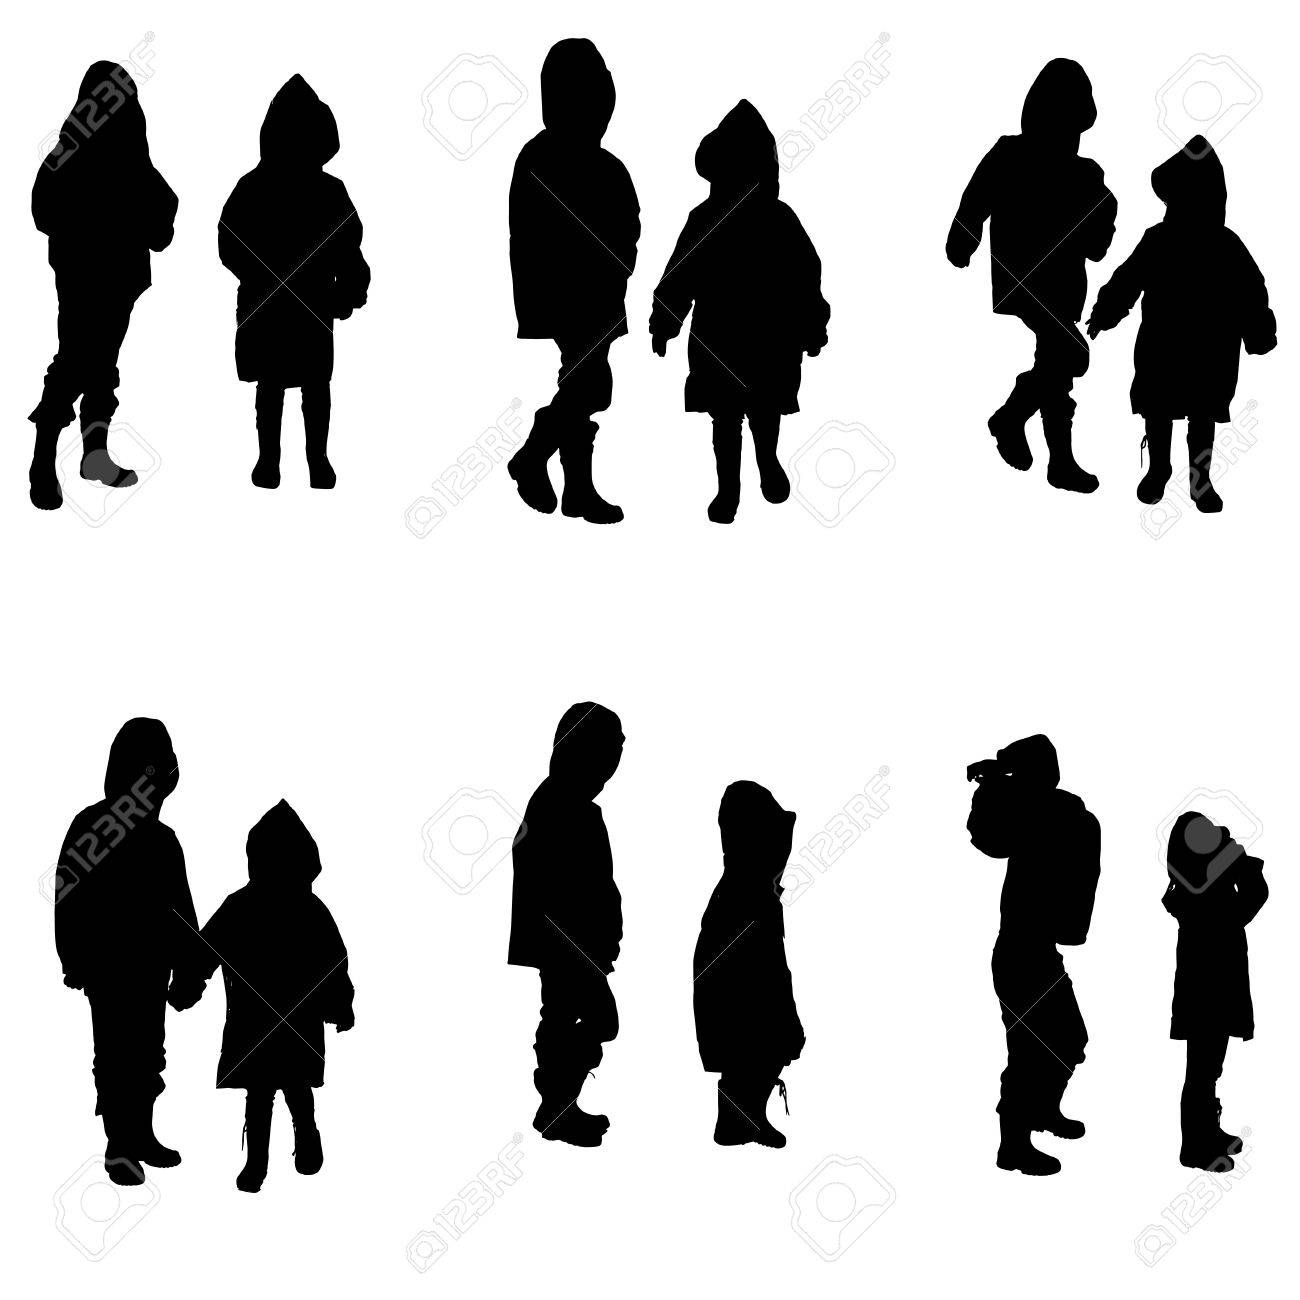 Vector Silhouette Of Children In Raincoats On White Background